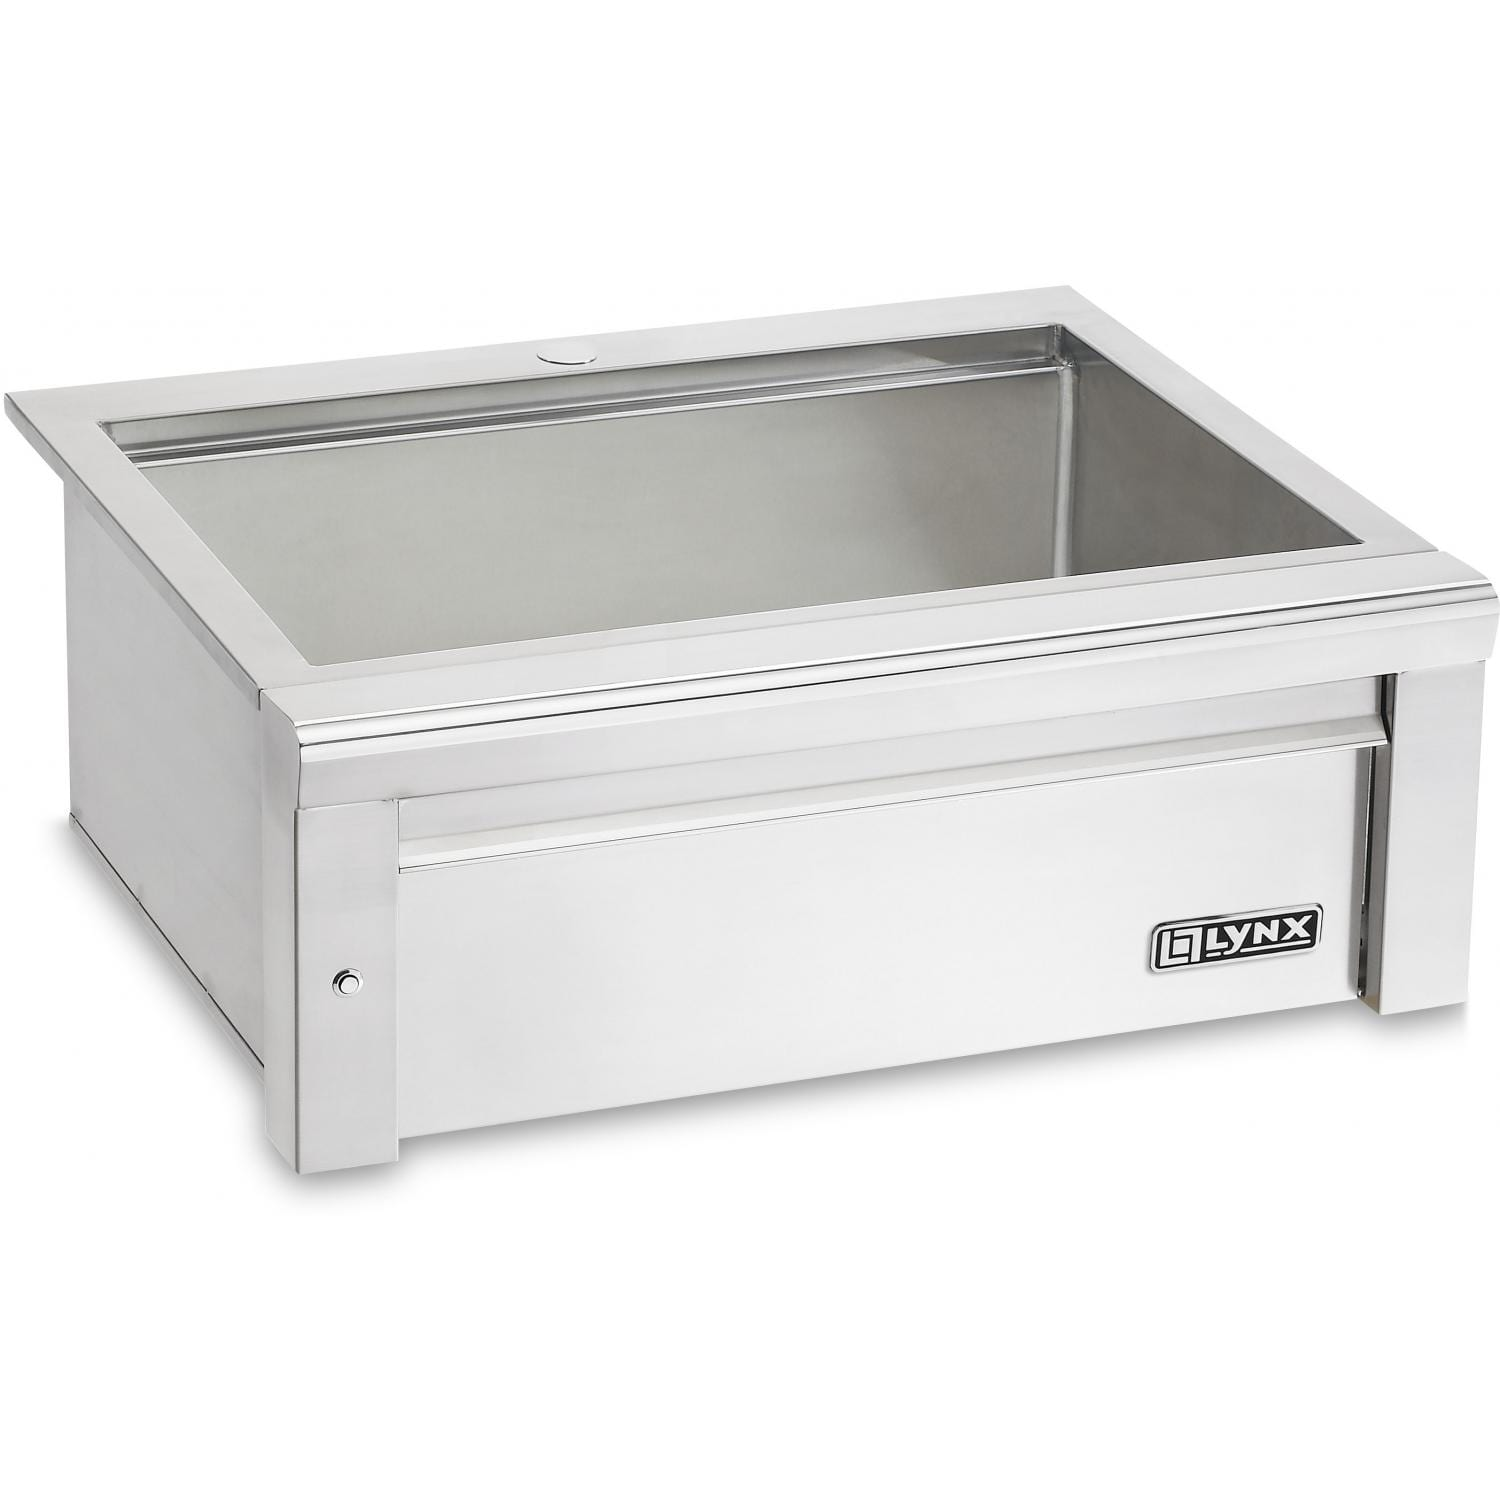 Lynx Professional 30-Inch Outdoor Rated Sink